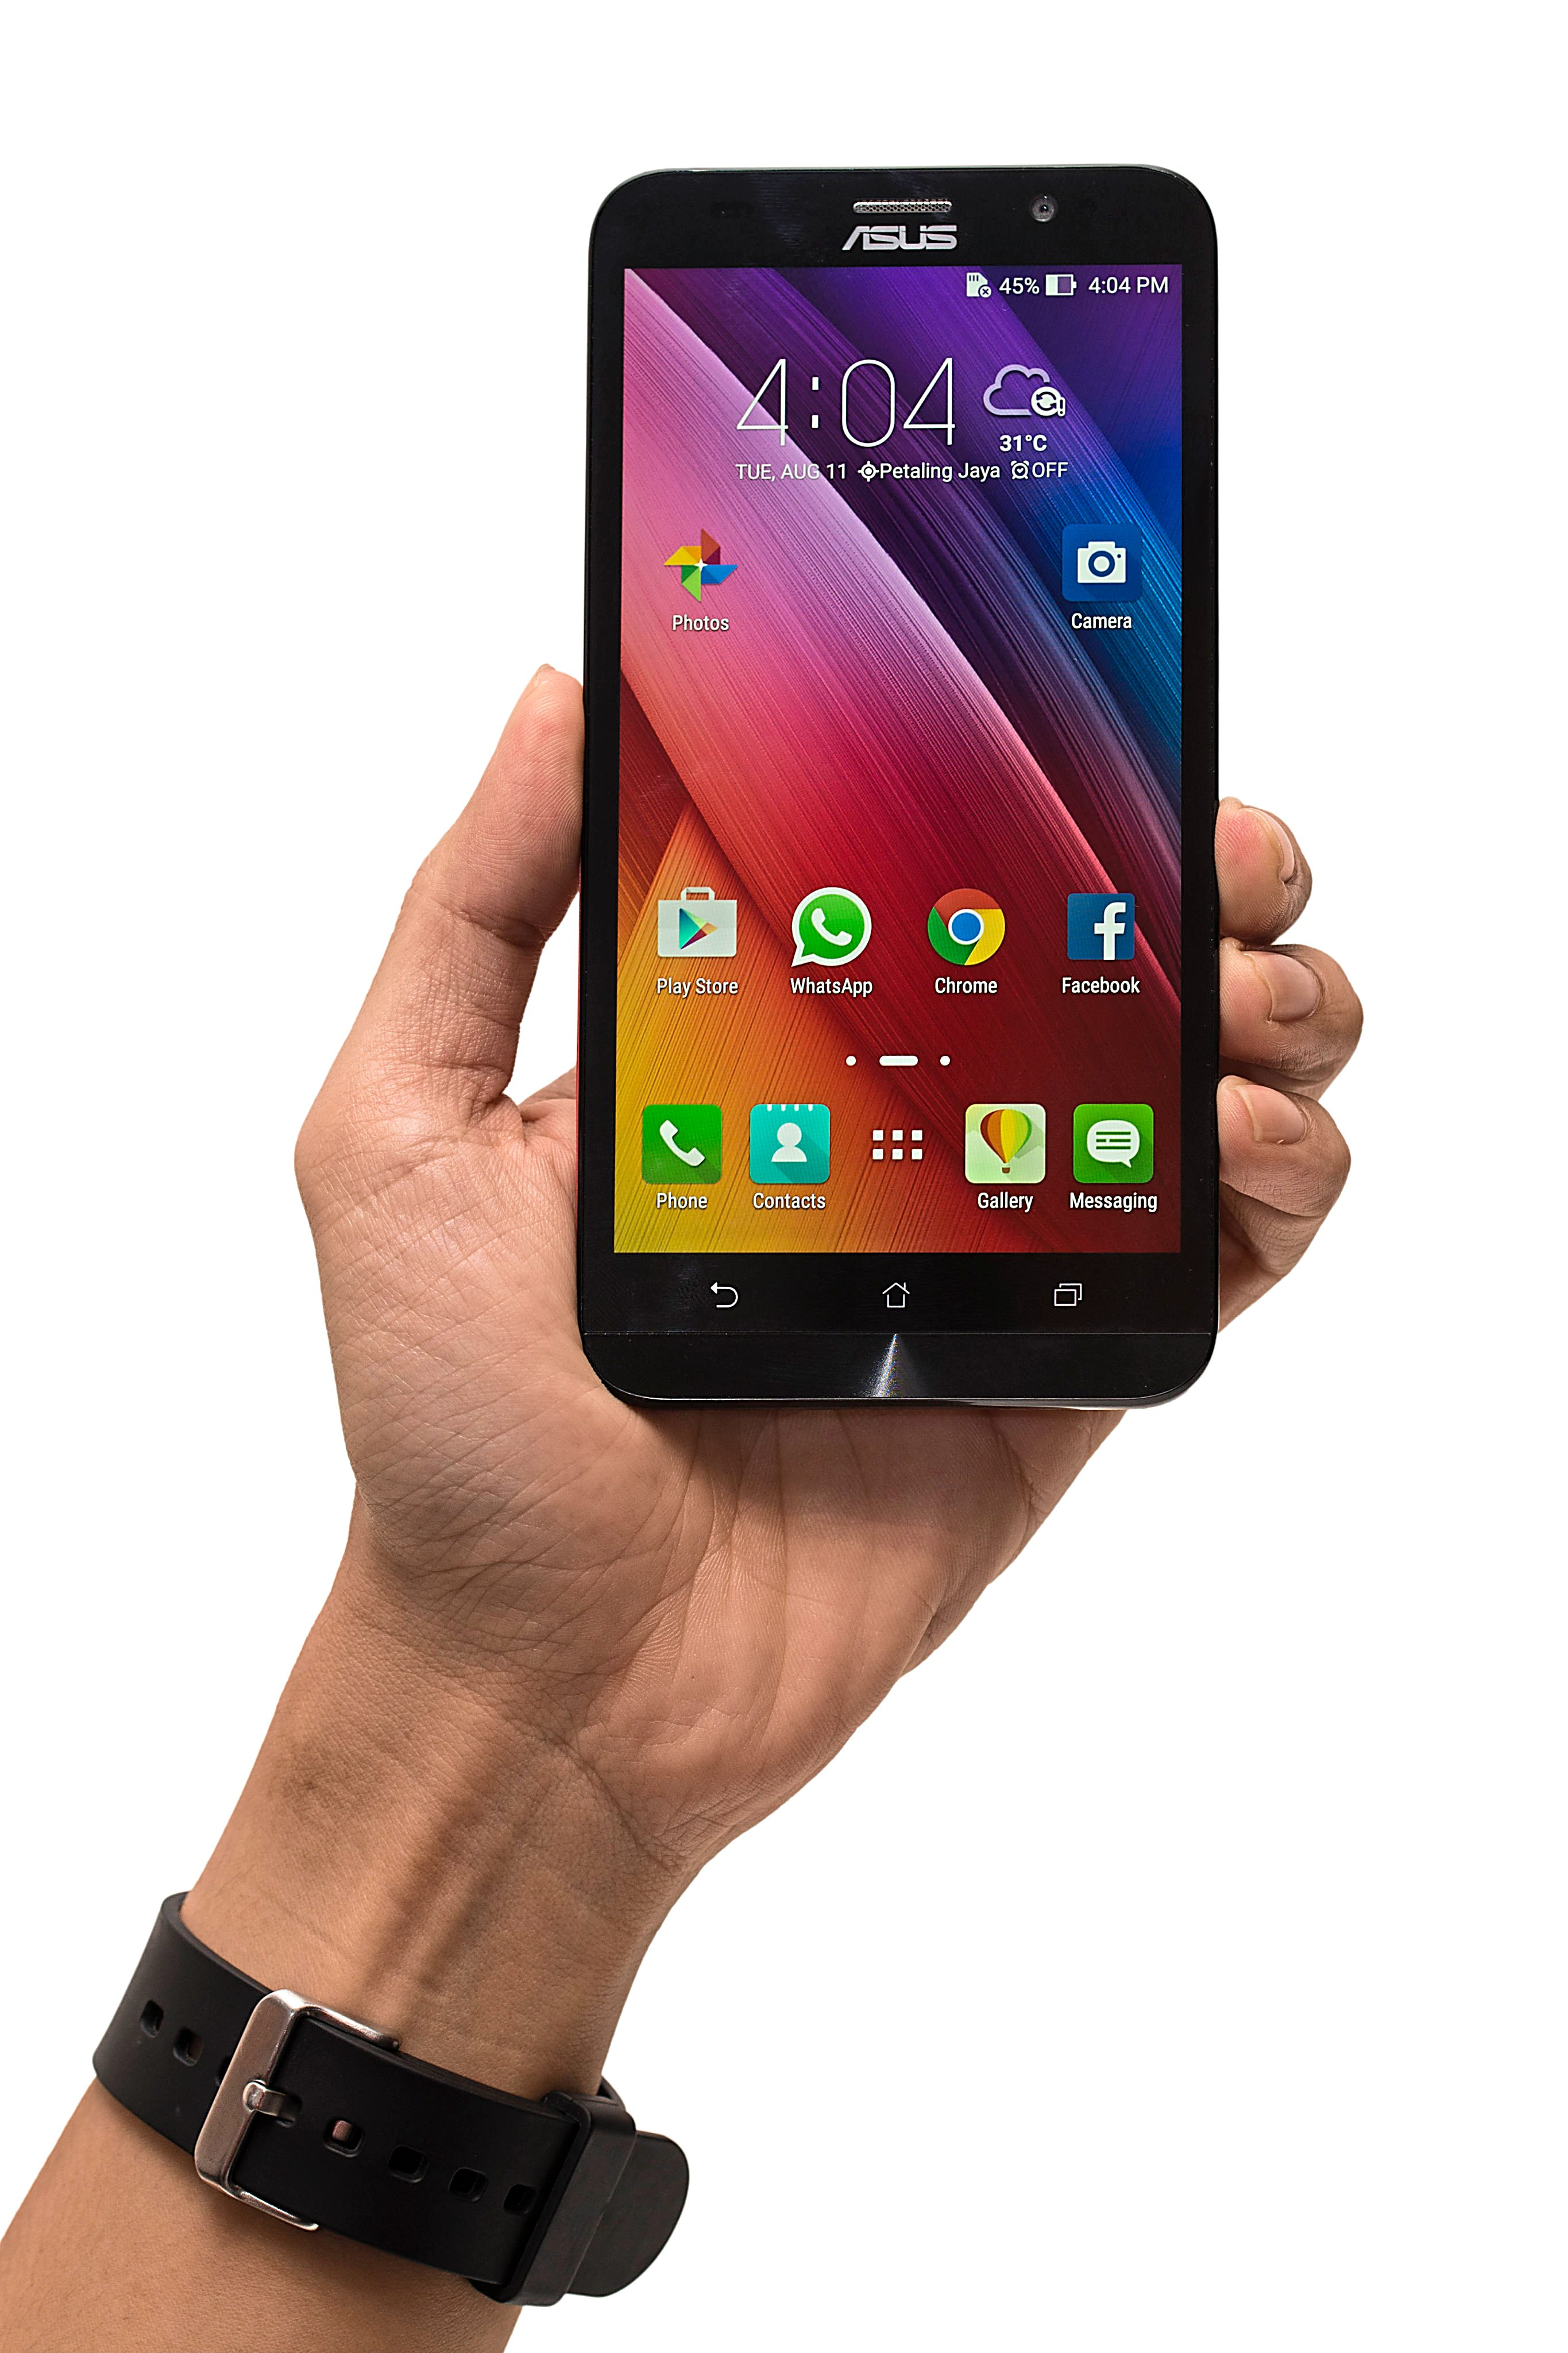 The Zenfone 2 is aims to offer premium specs at less than half of its competitors price range.